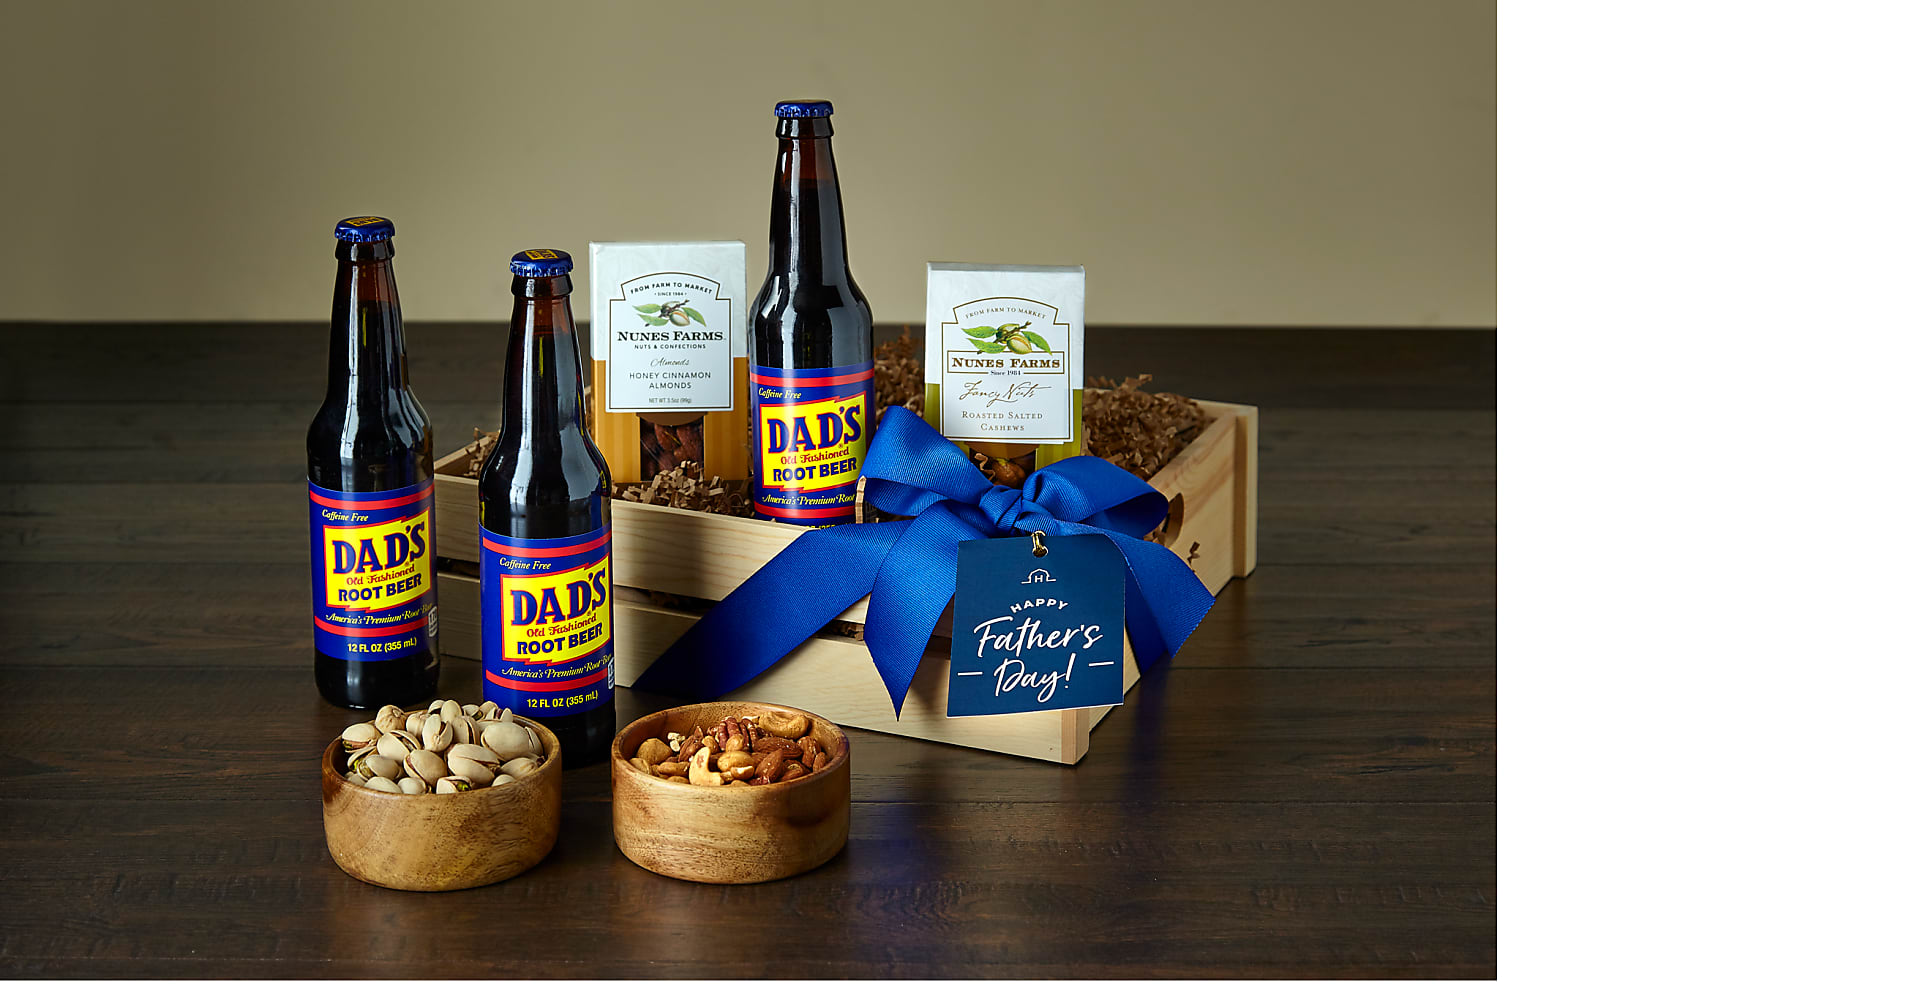 Nuts About Dad Root Beer & Nuts Gift Set - Image 1 Of 2